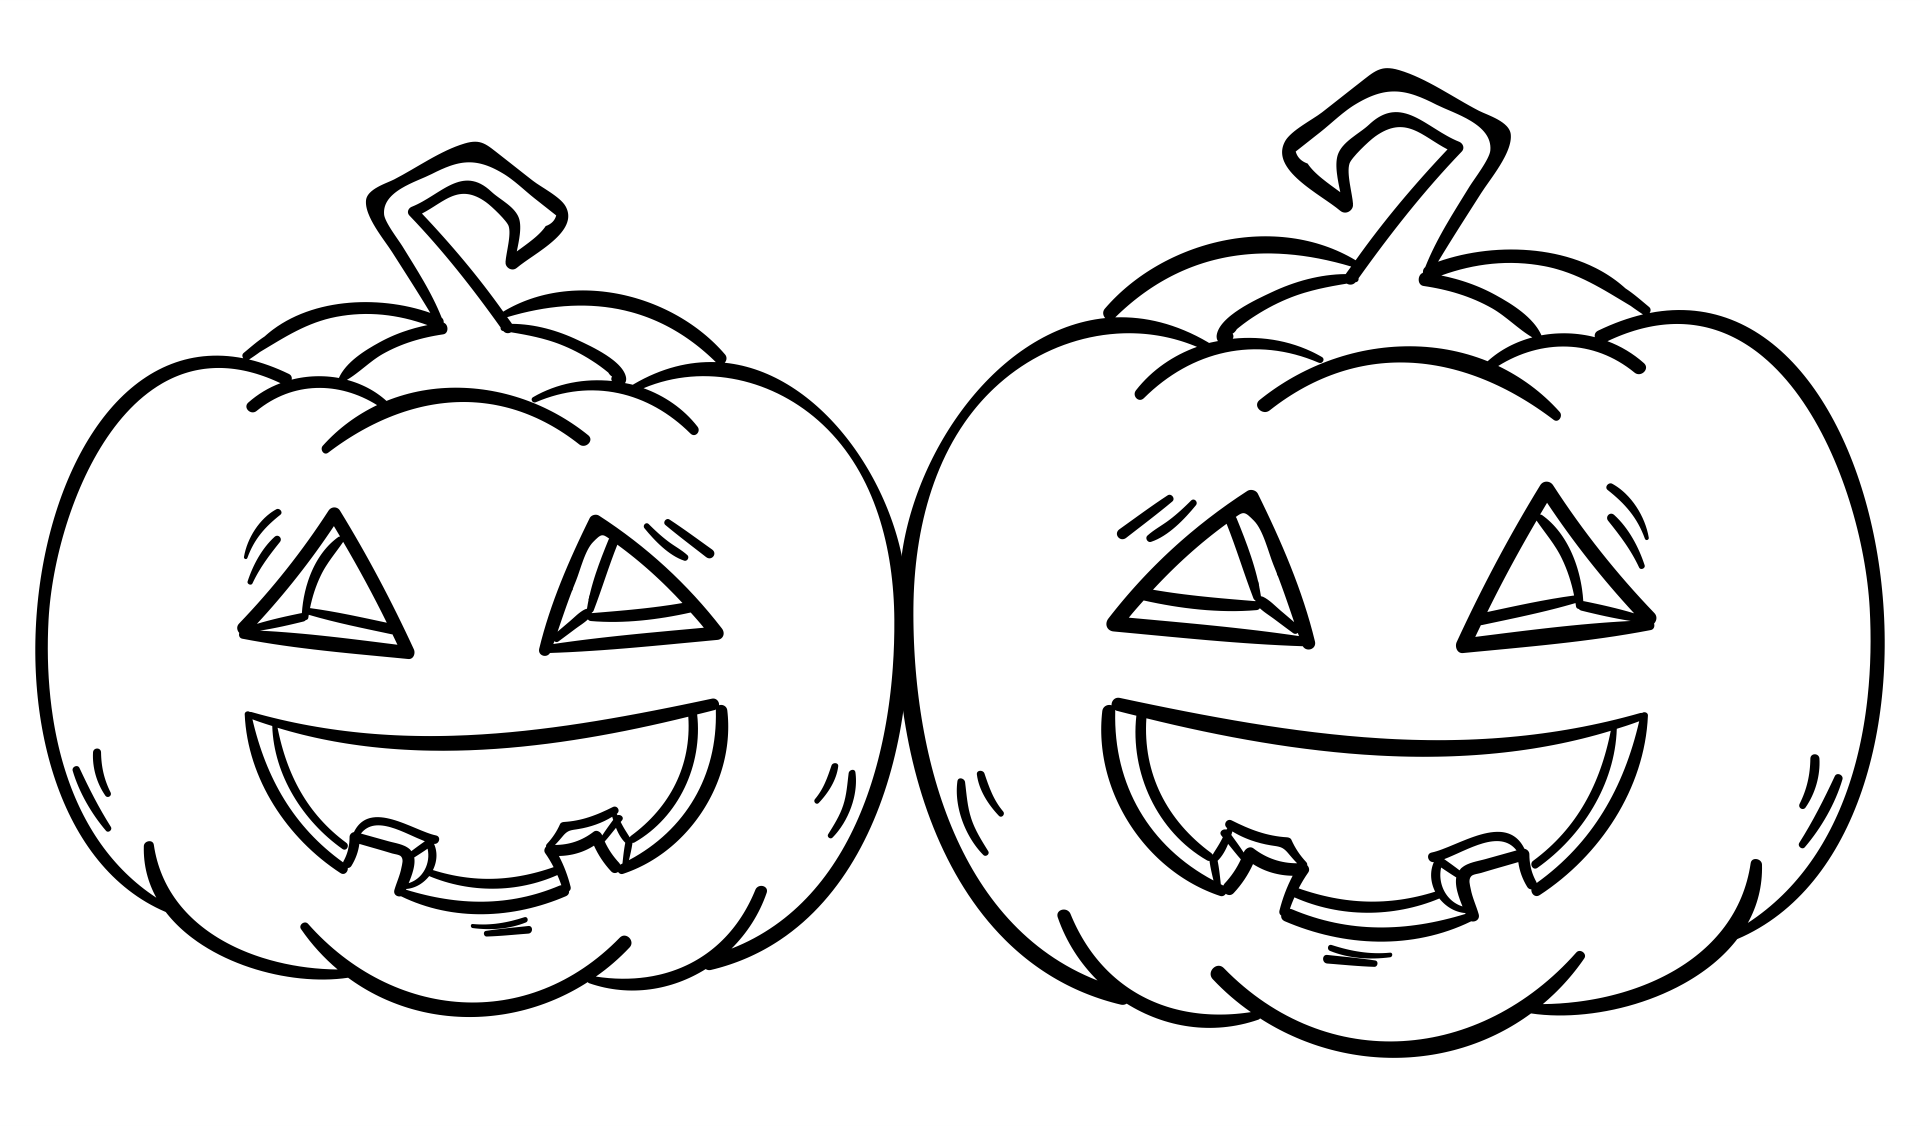 5 Images of Free Halloween Printable Pumpkins Outline